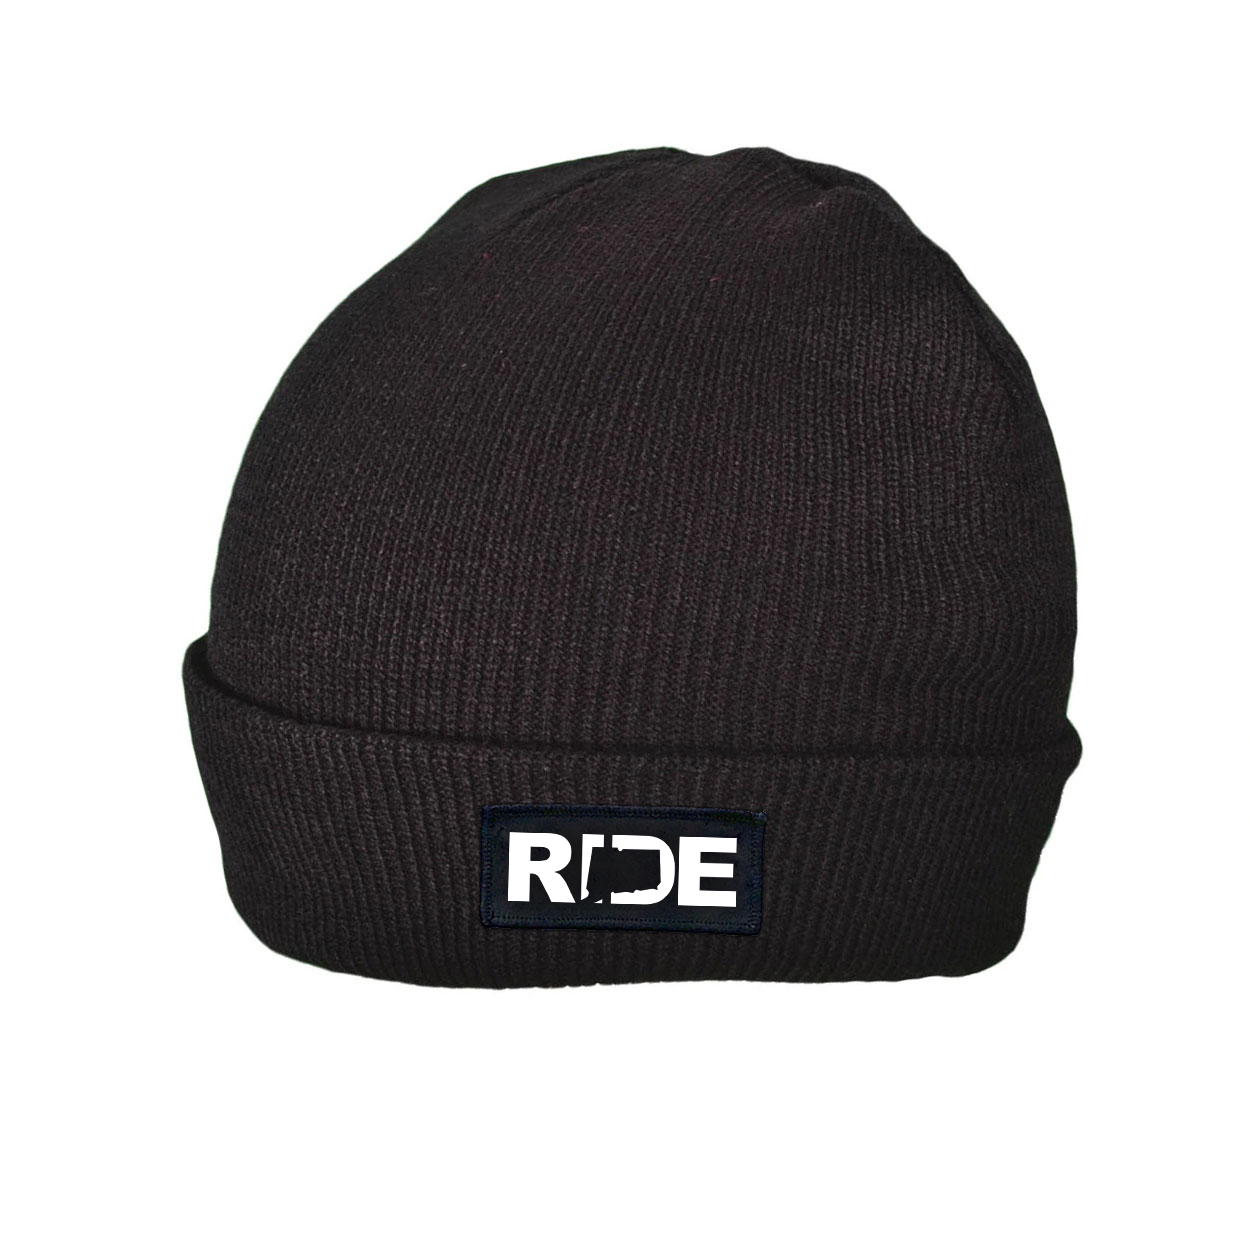 Ride Connecticut Night Out Woven Patch Roll Up Skully Beanie Black (White Logo)